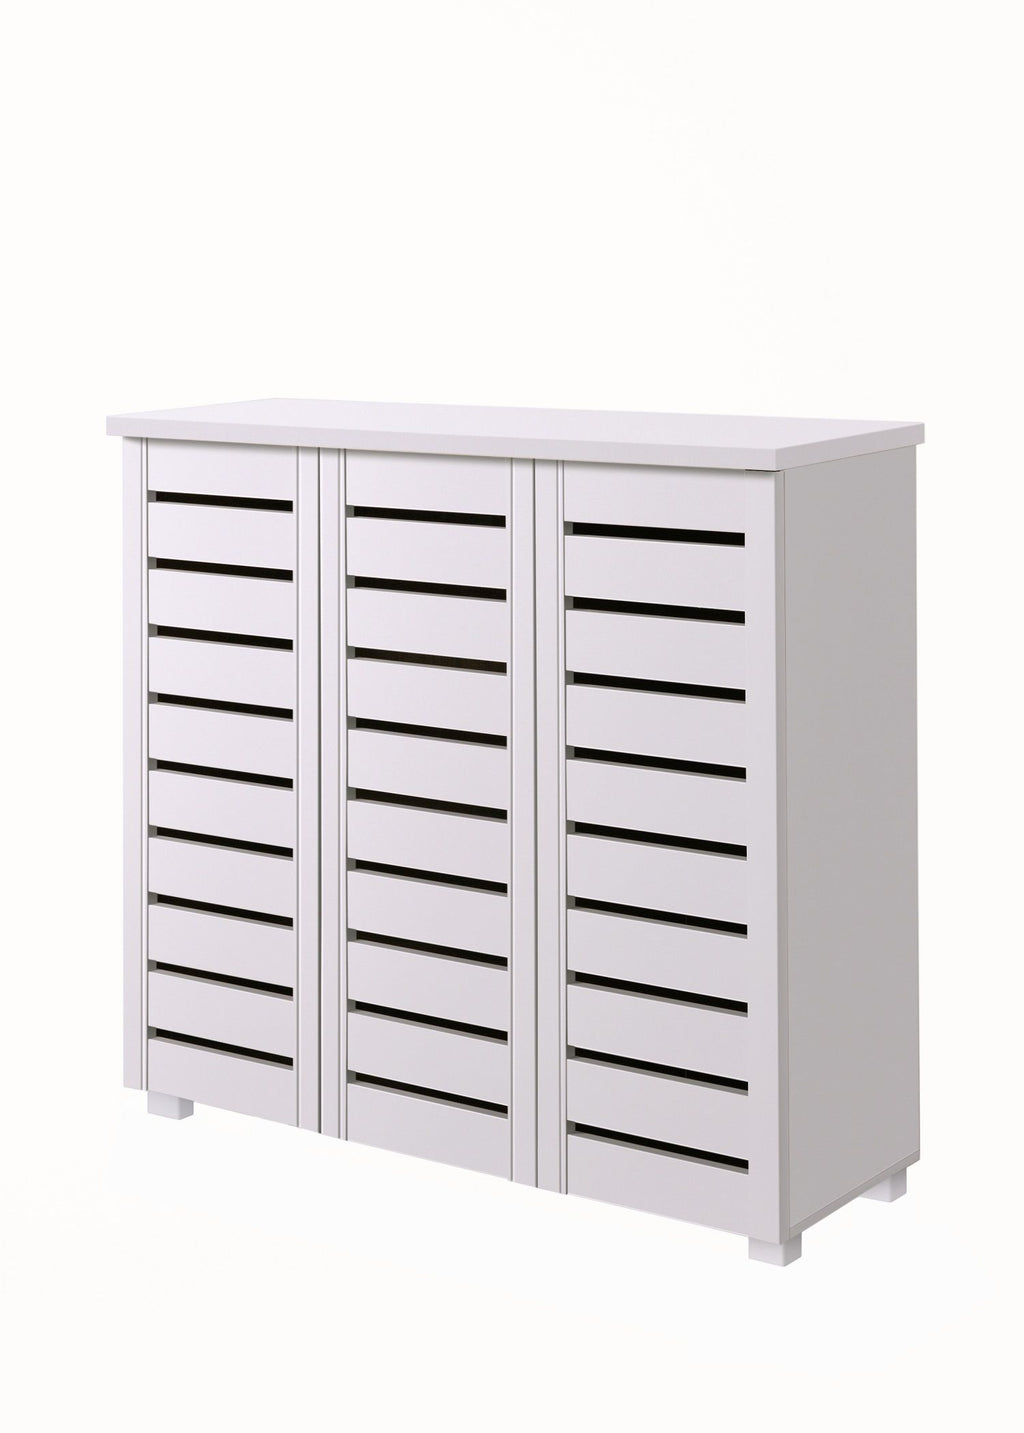 Essentials 3 Door Shoe Cabinet